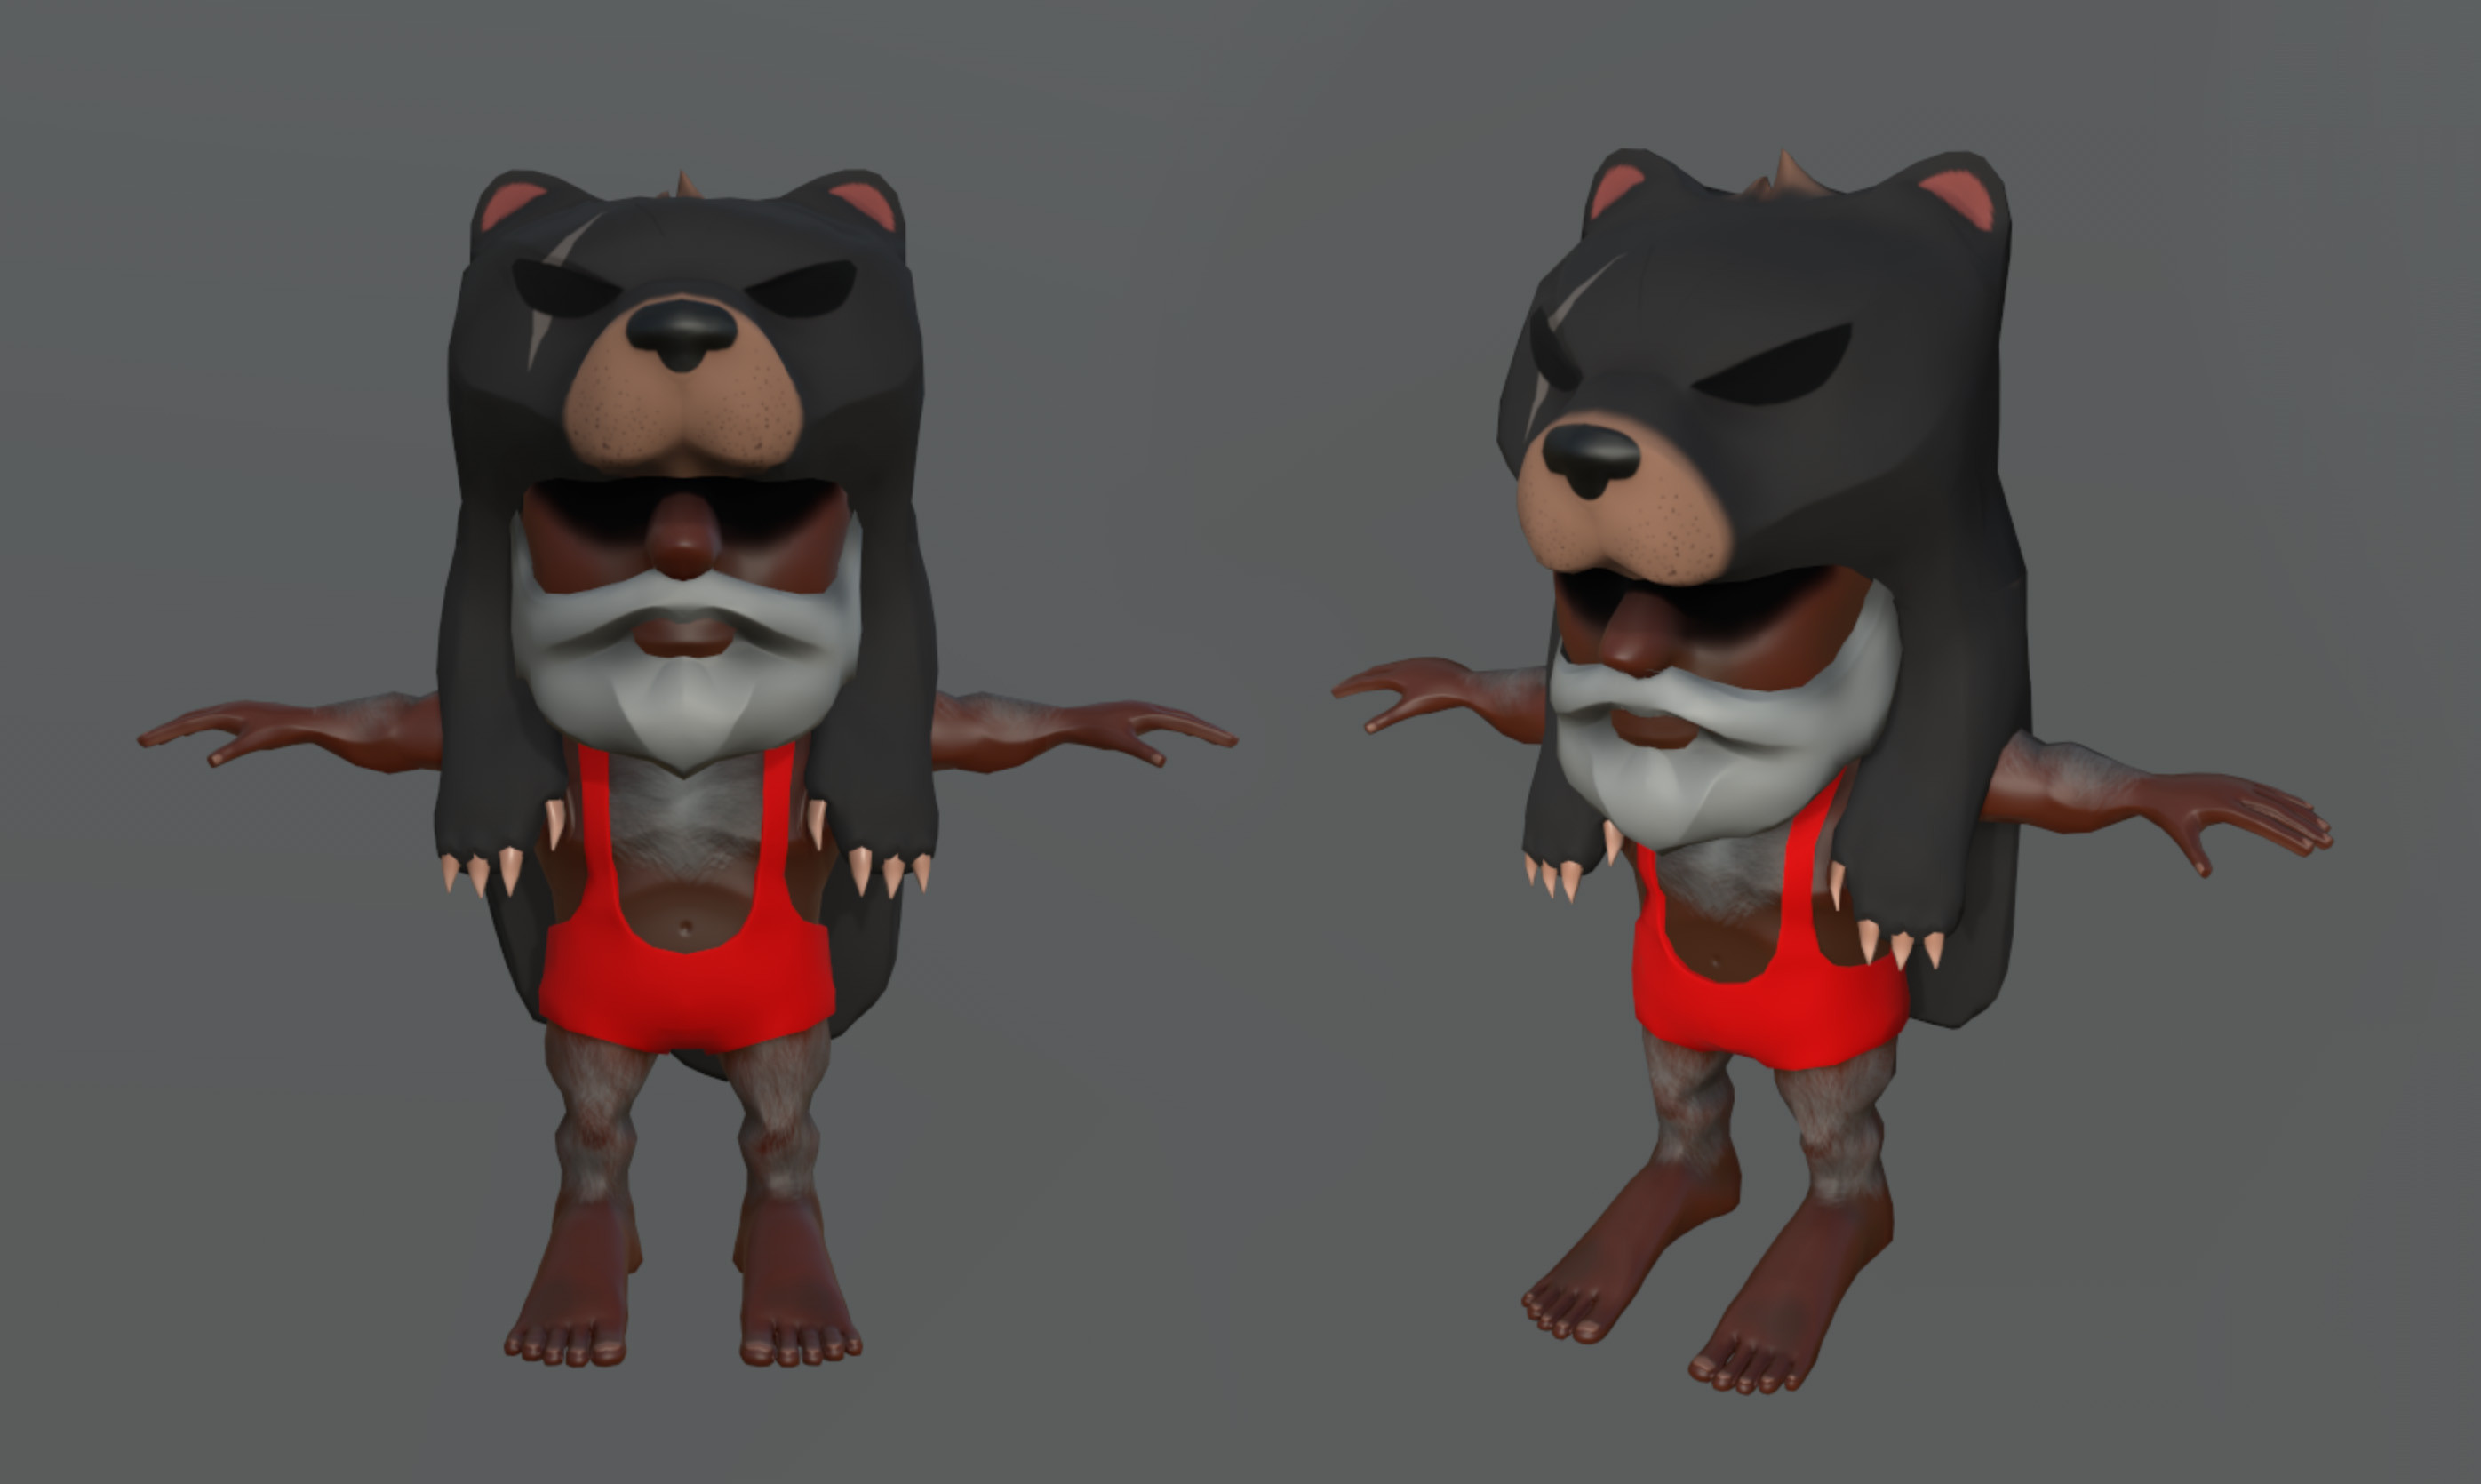 Bear Guy, the character was modeled based on a mix of Barry Briar and Abiha Mati concept arts